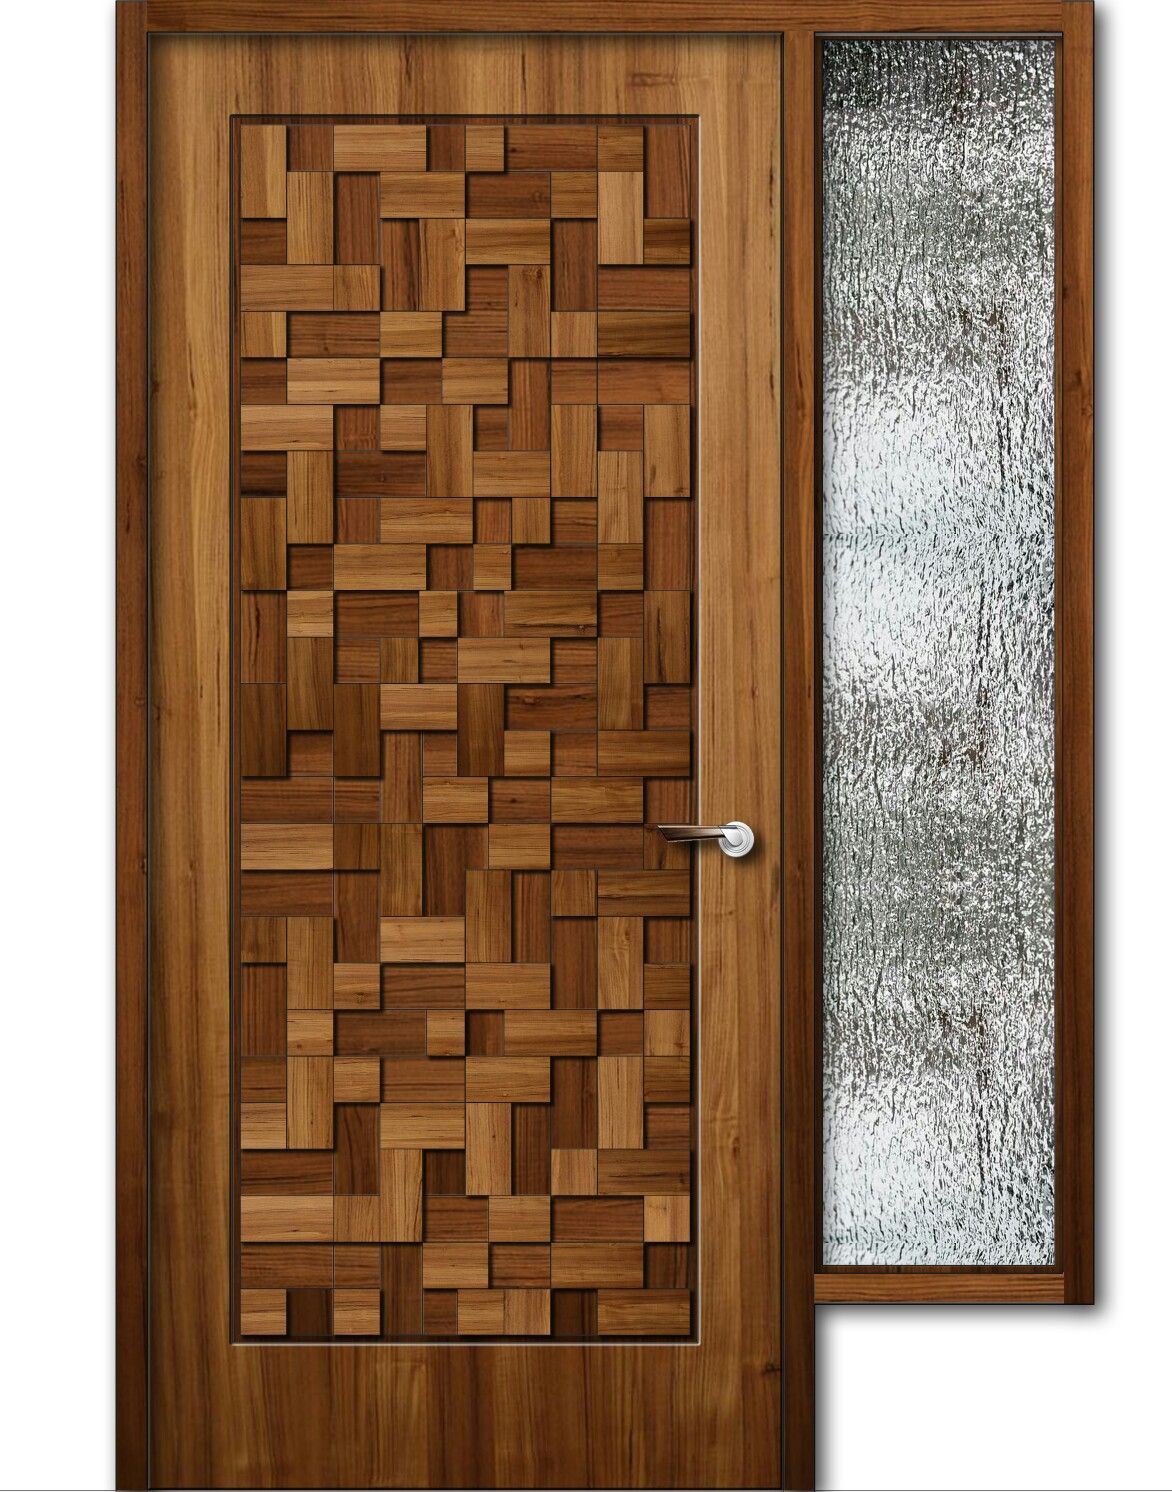 Teak wood finish wooden door with window, 8feet height